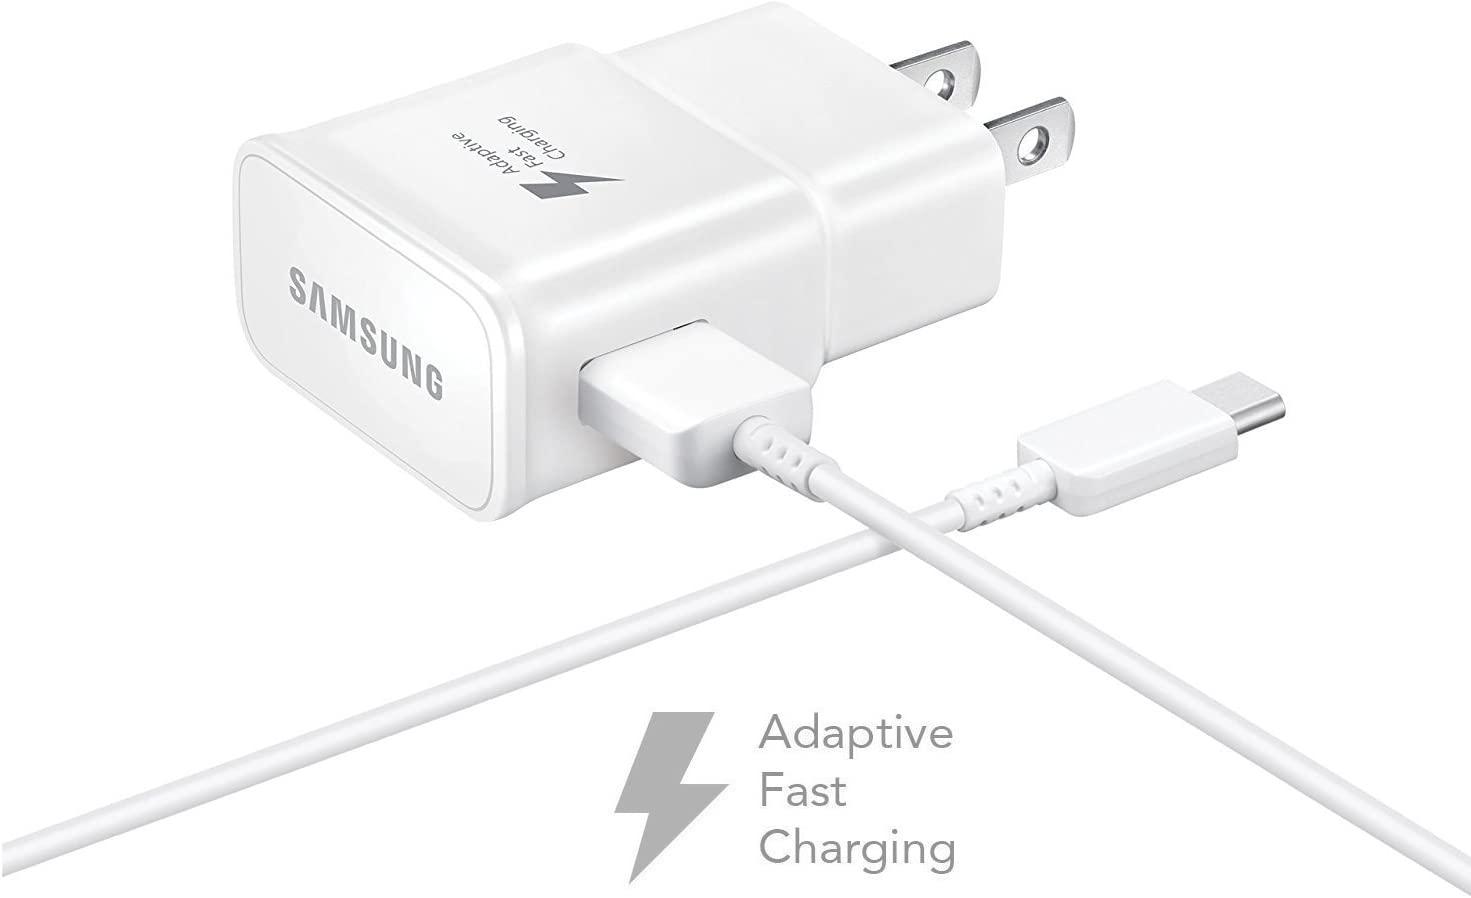 Wall Charger + 4 FT USB C Cable White 2017 OEM Quick Fast Charger for Samsung Galaxy A5 - AFC uses Dual voltages for up to 50/% Faster Charging! Cell Phones